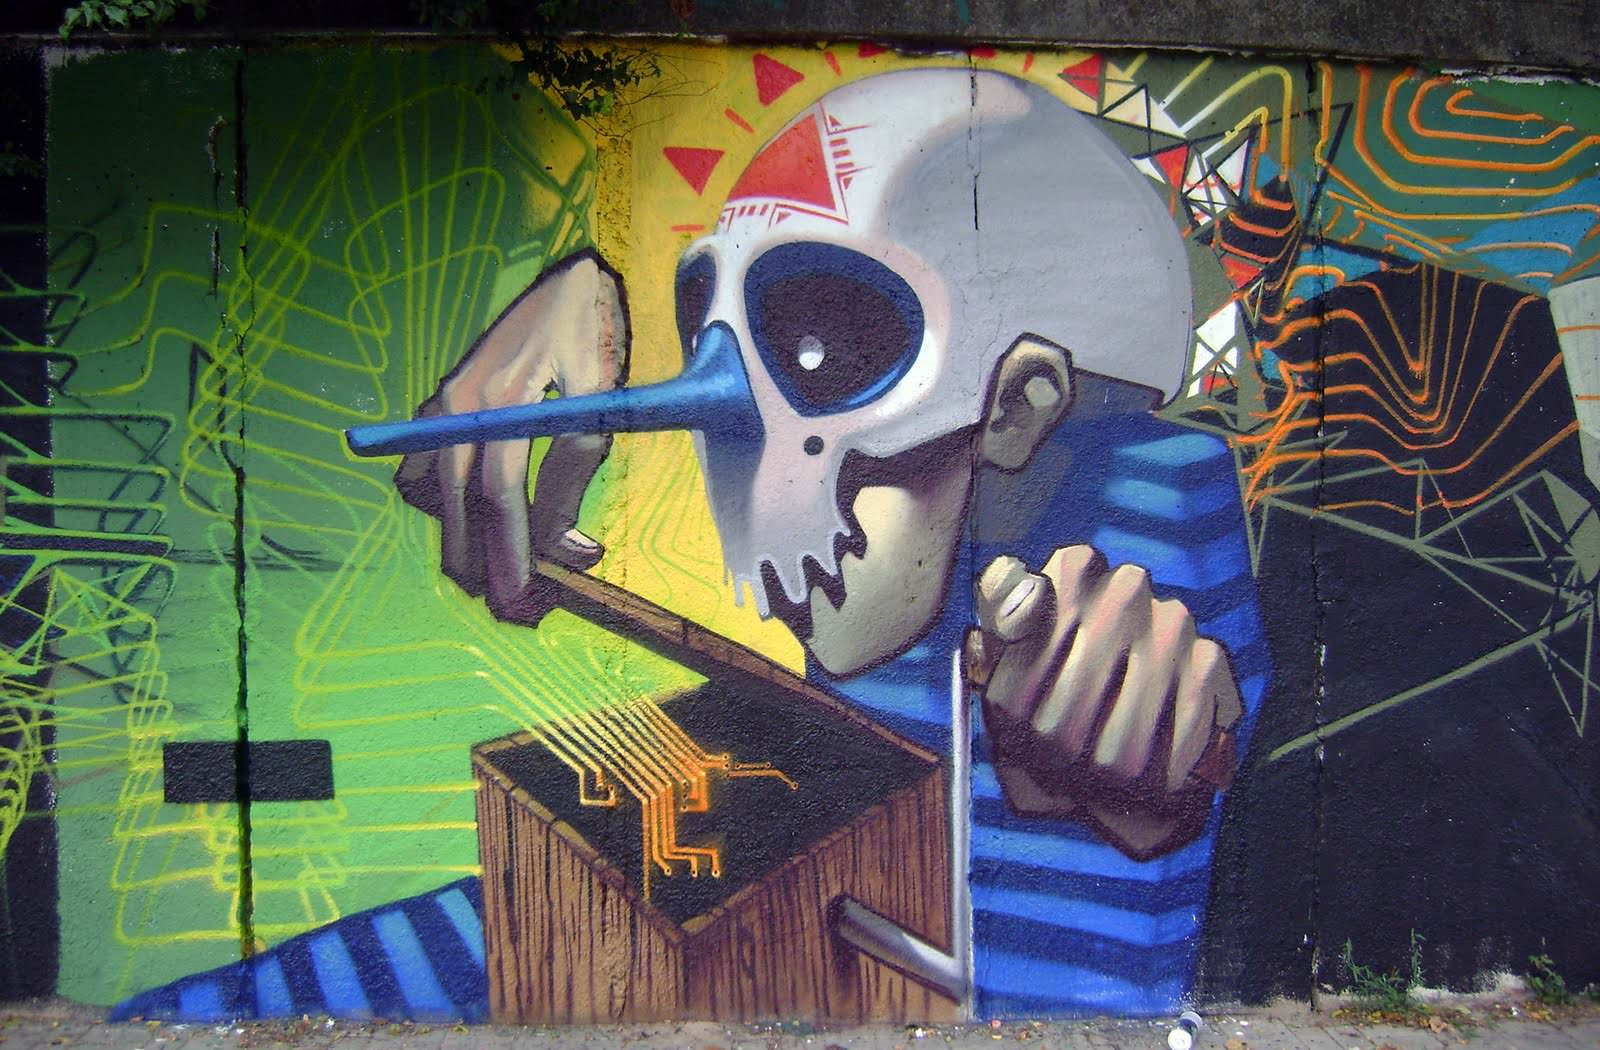 etam cru music box graffiti street art horror skull mask wall painting & etam cru music box graffiti street art horror skull mask wall ...